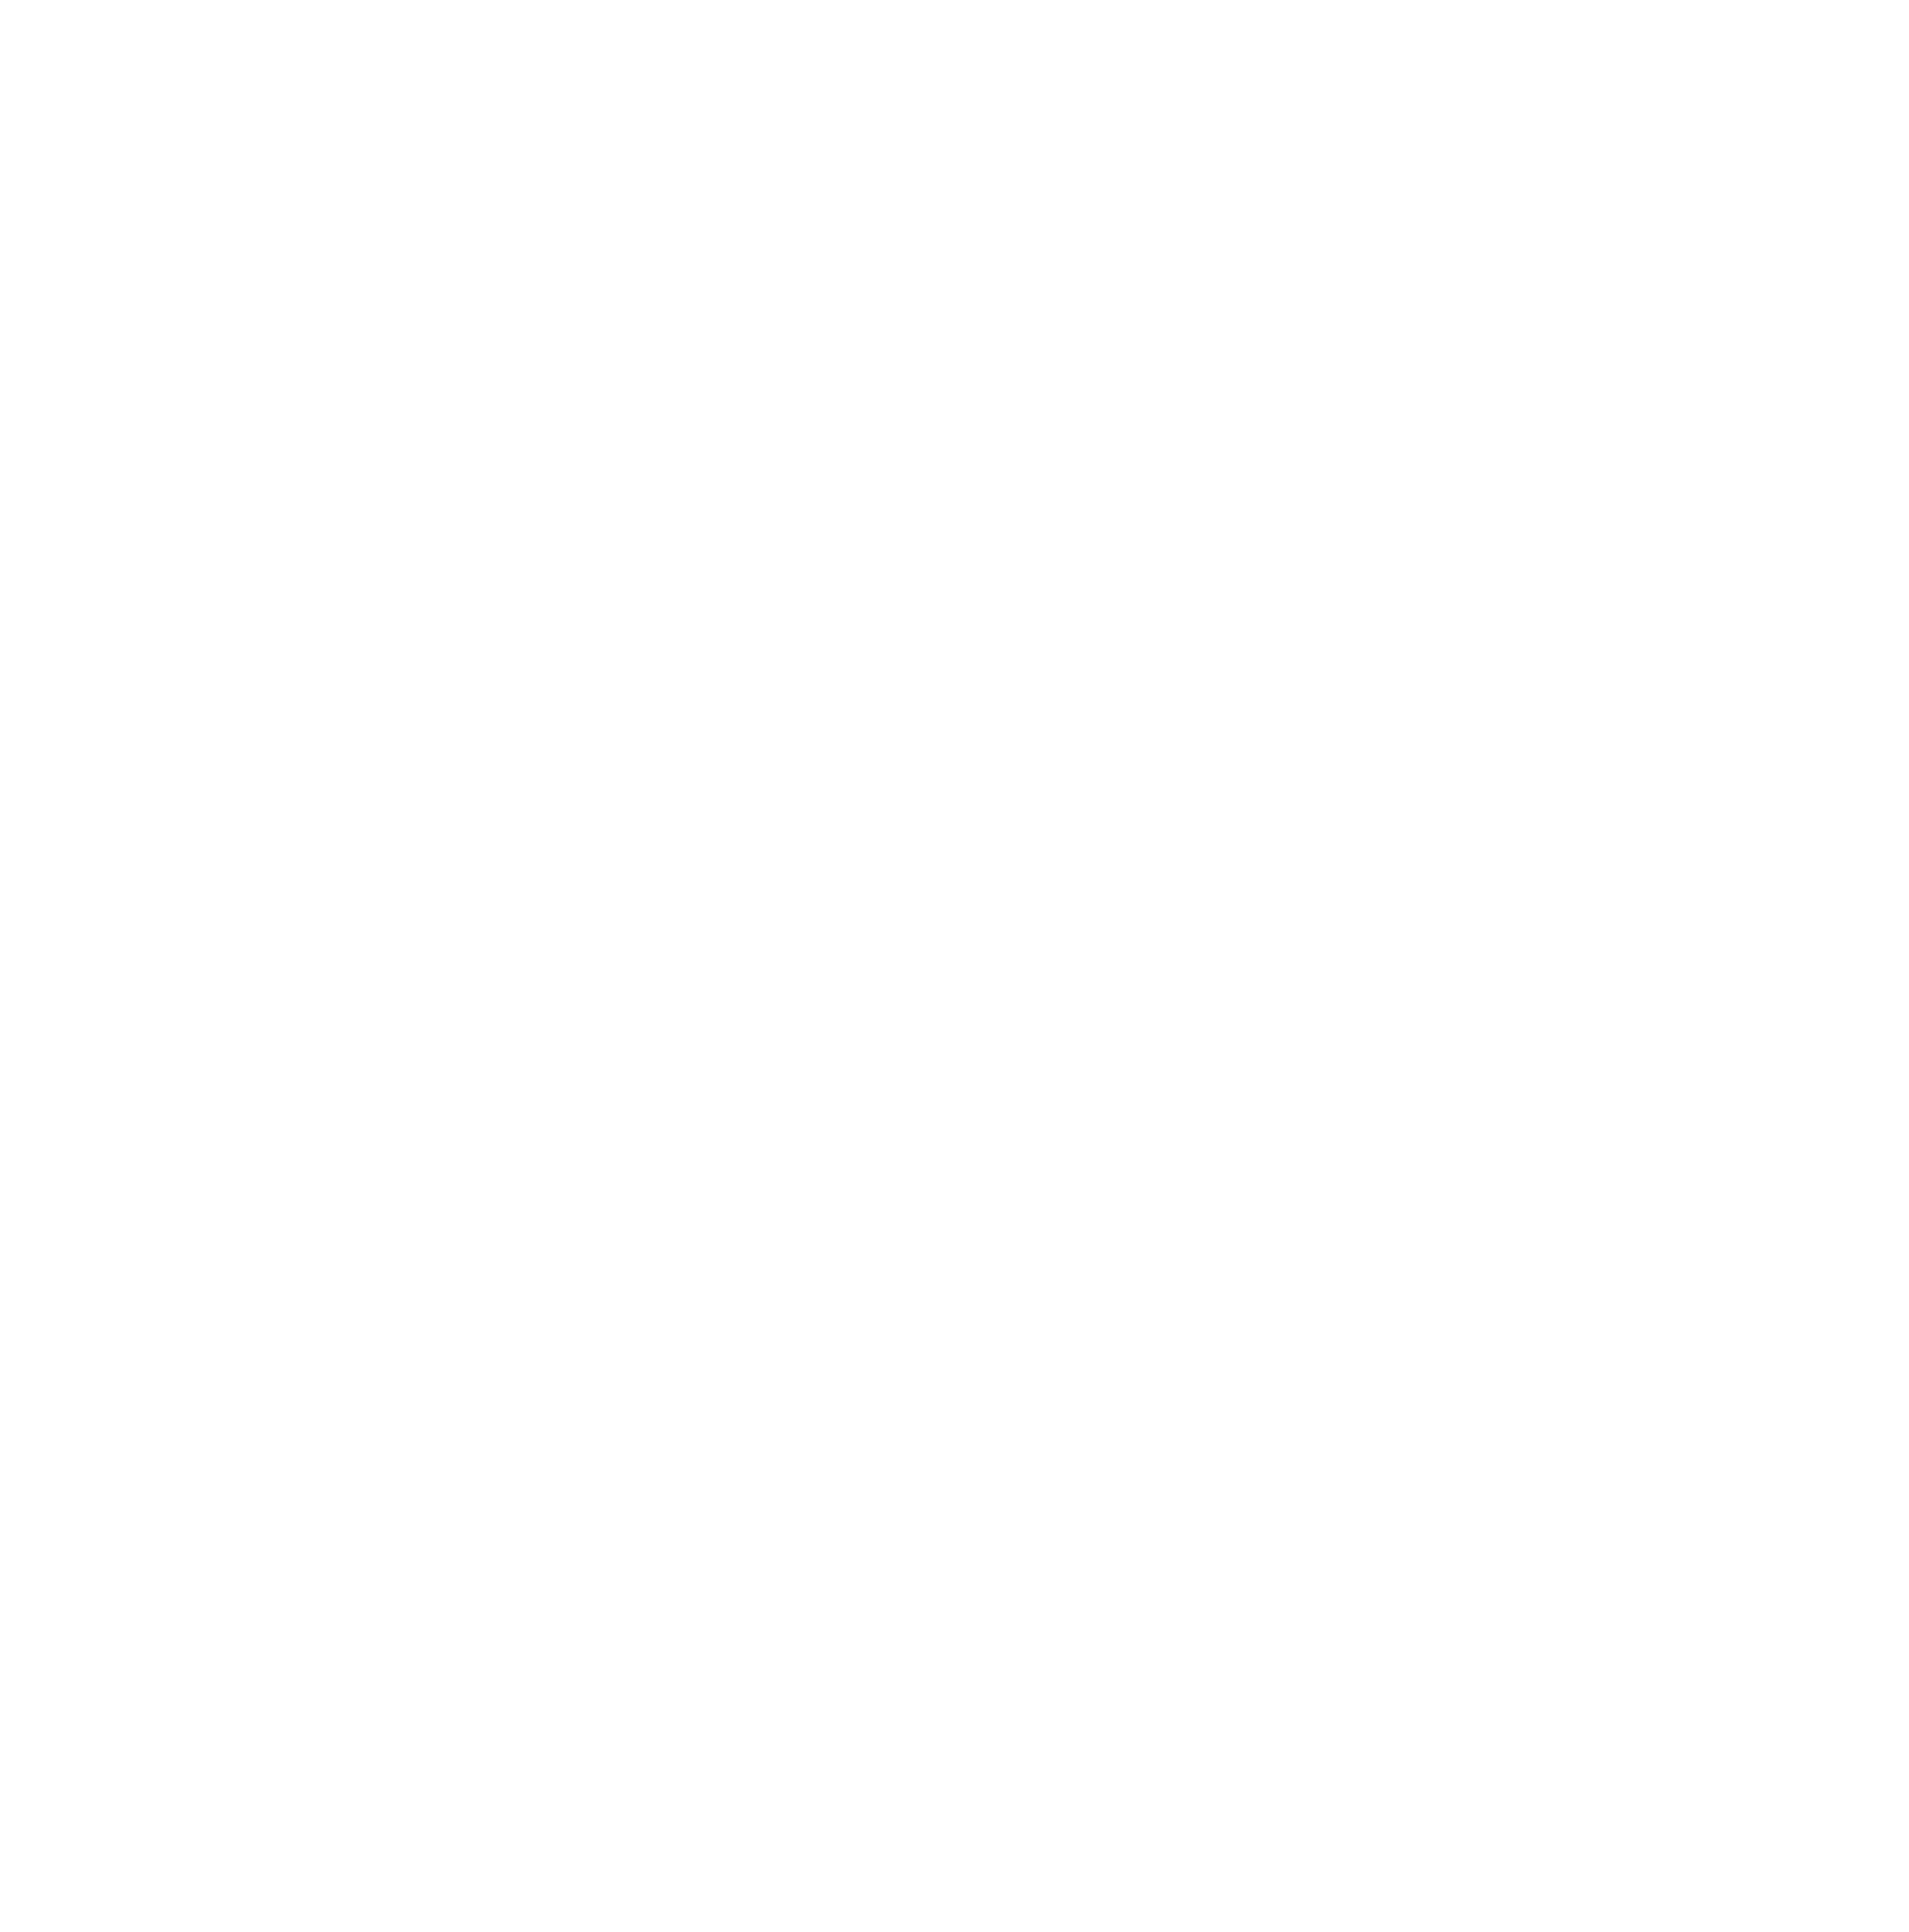 SUTTON BAR ROOM WHITE_logo_outlines.png